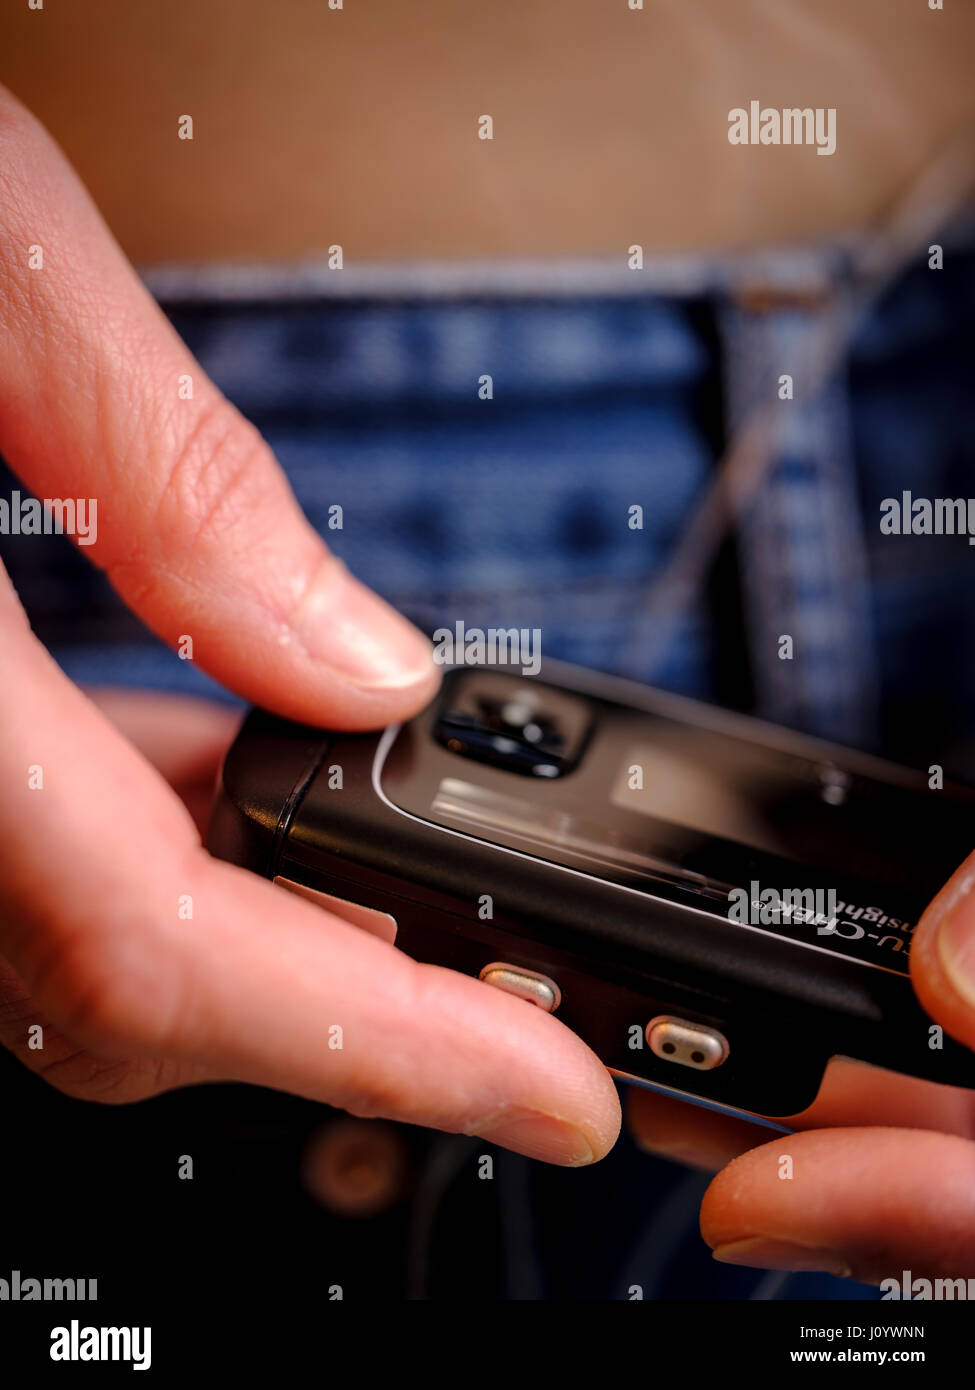 A woman with Type 1 diabetes using an insulin pump and constant  a glucose monitor. - Stock Image